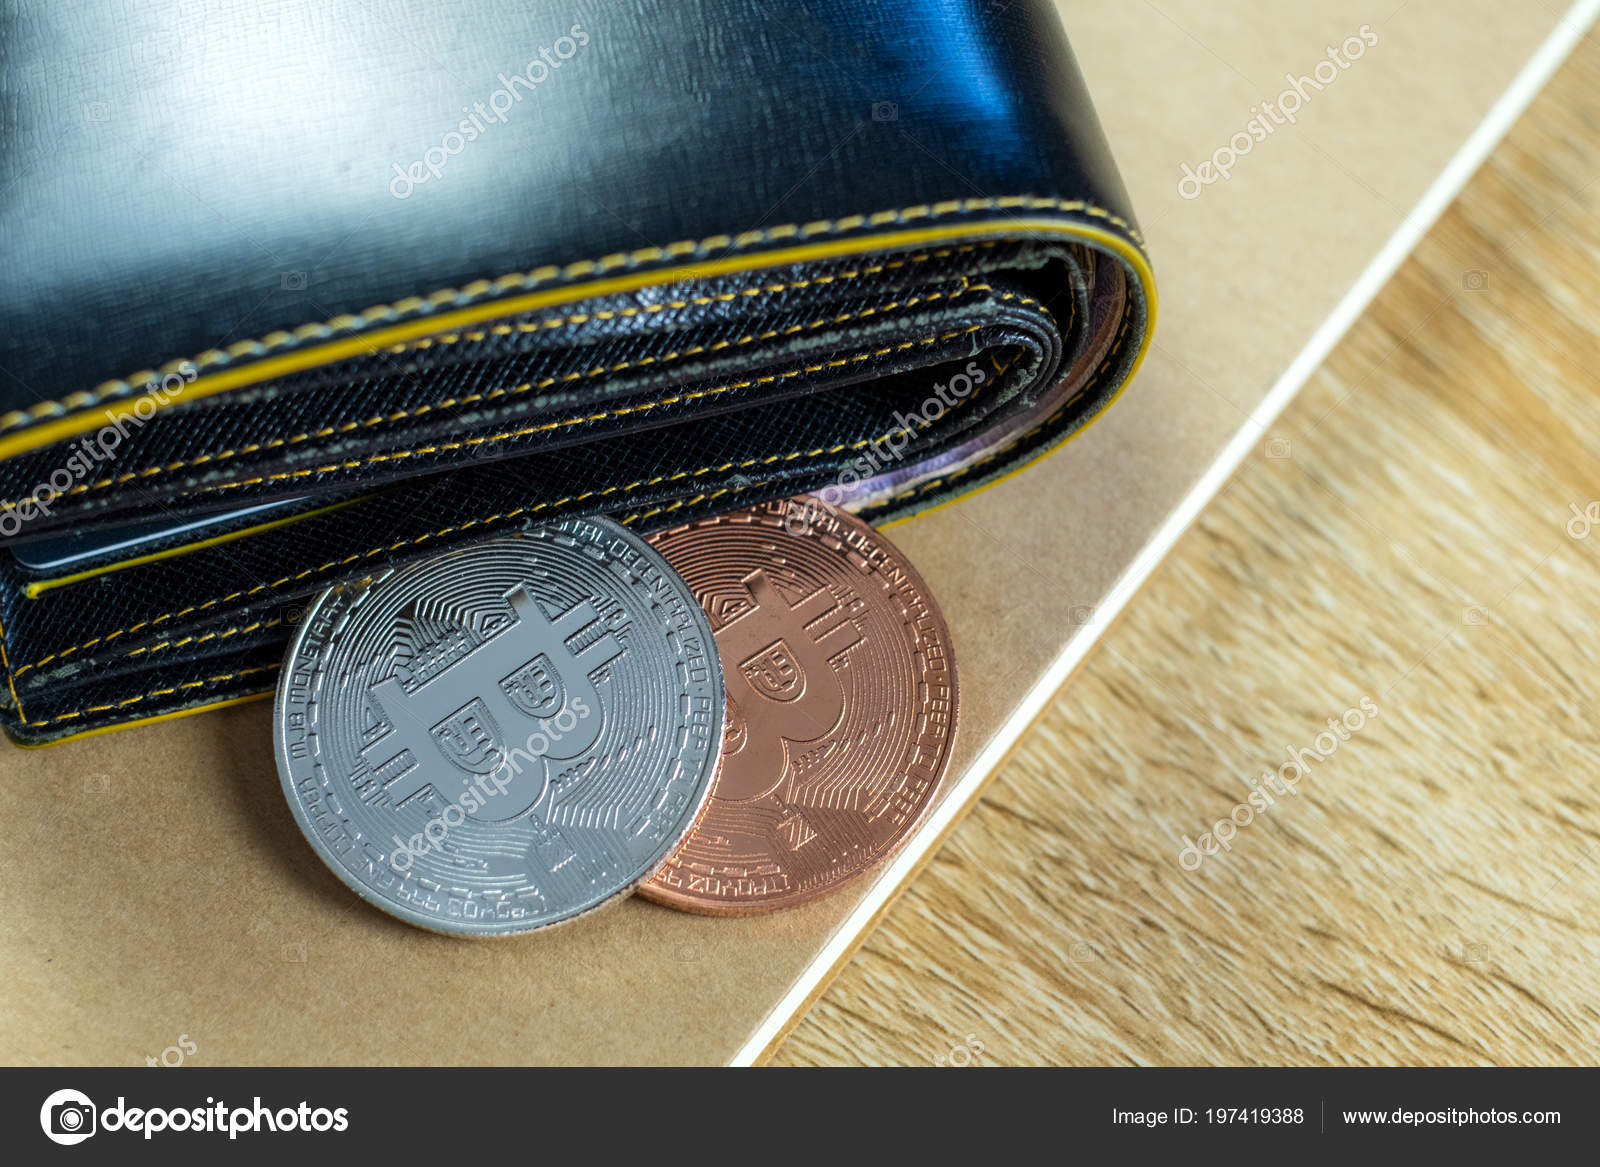 purse wallet cryptocurrency